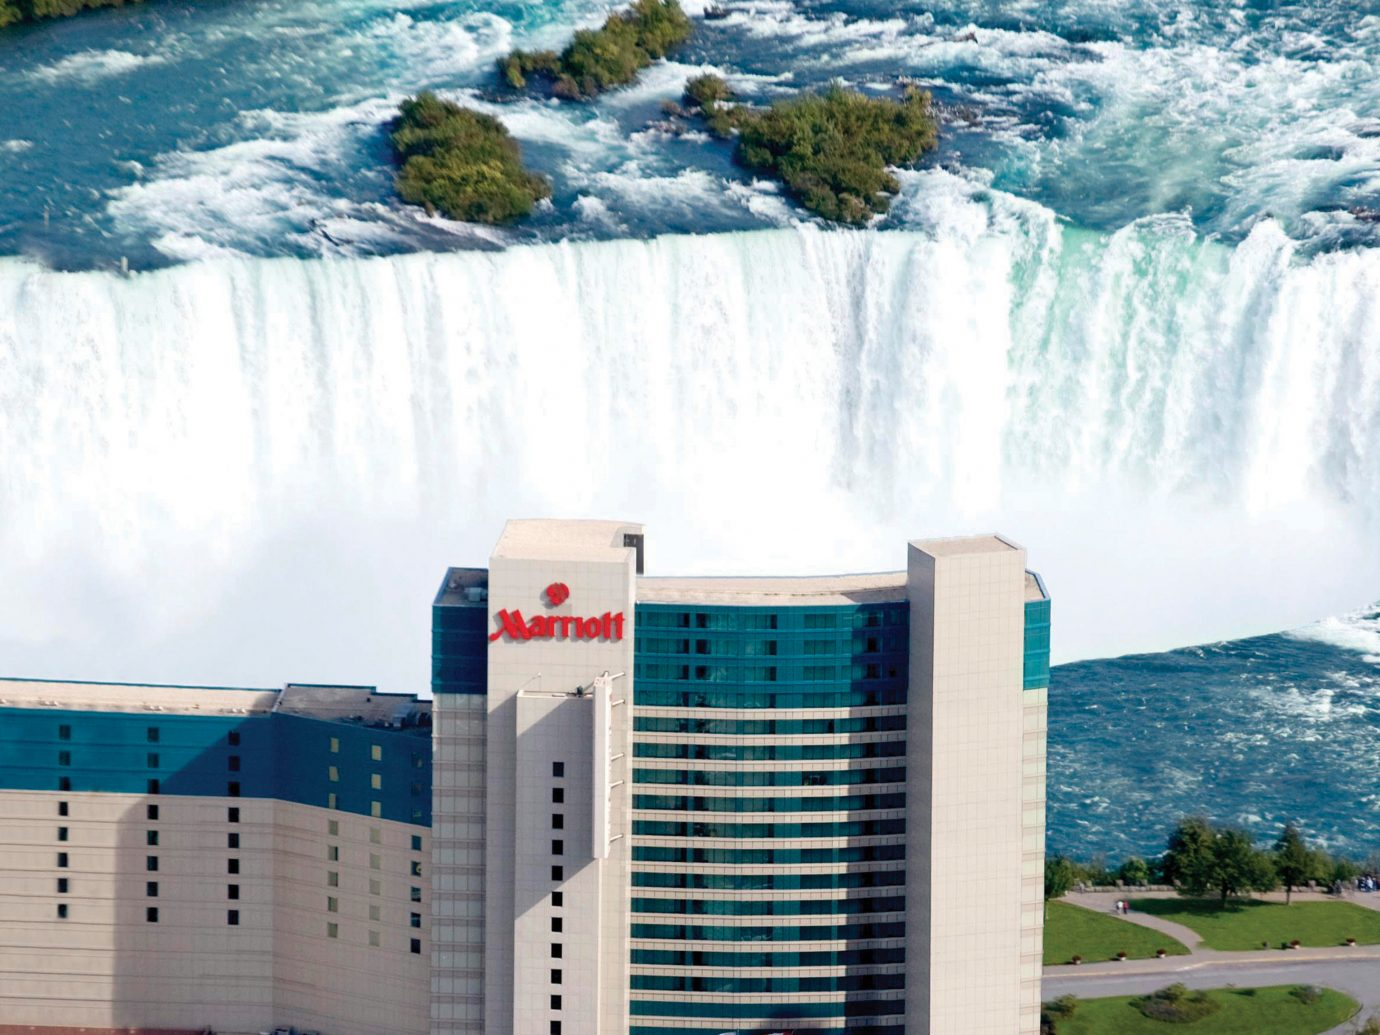 Hotels outdoor water water resources water feature City real estate sky condominium corporate headquarters energy